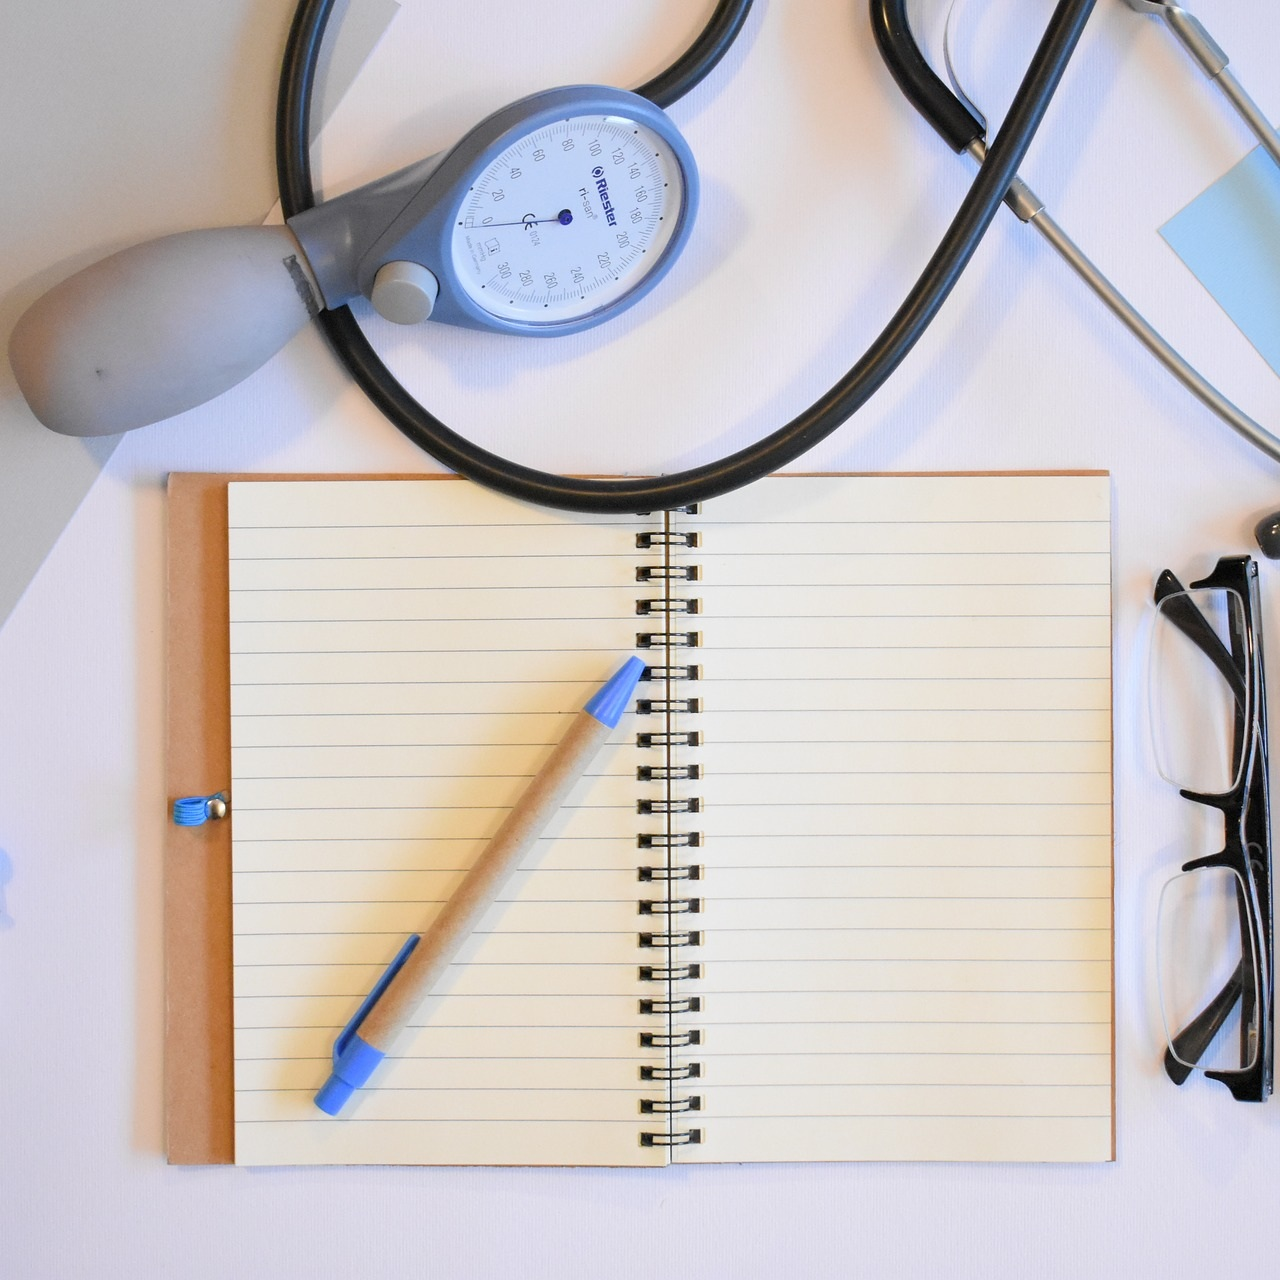 Considering a New Primary Care Physician from Lincoln, NE